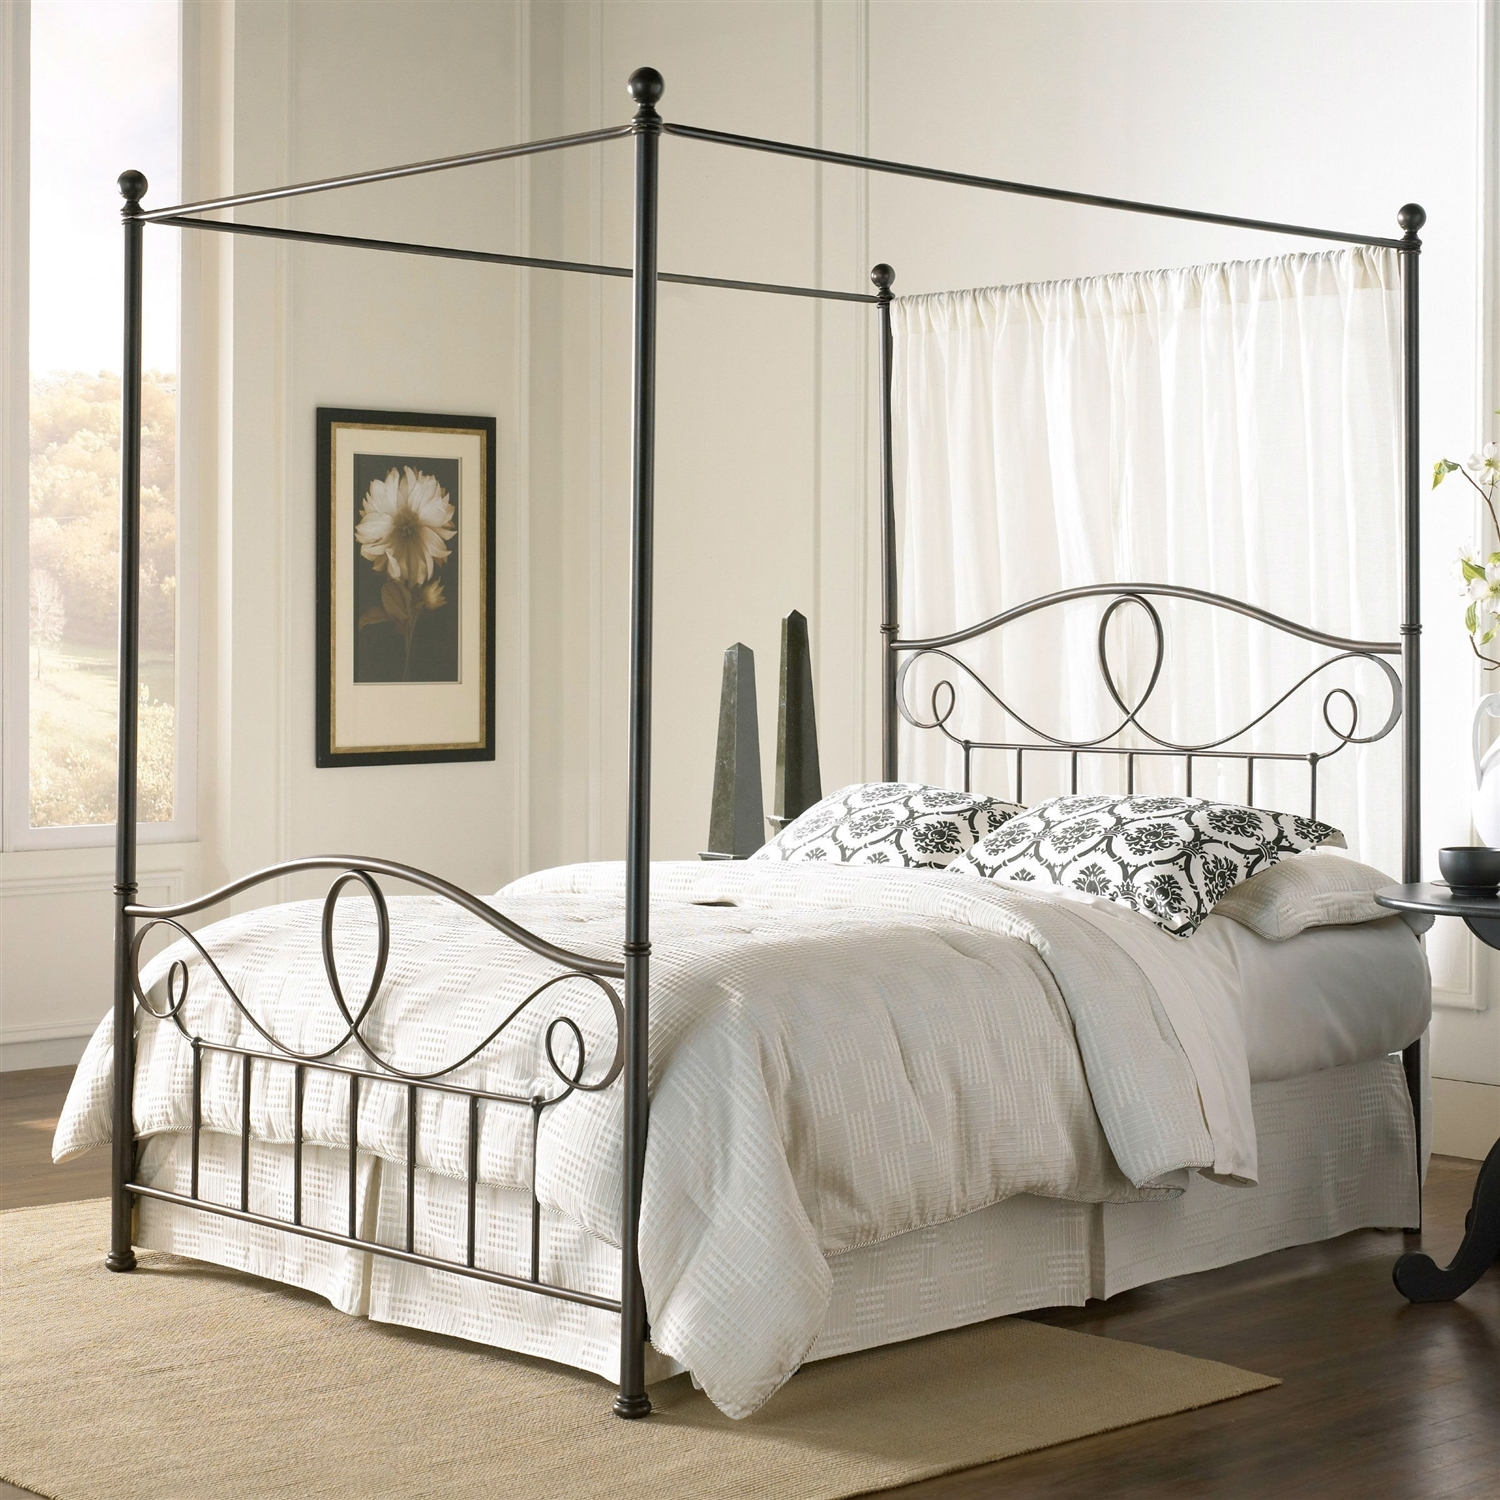 Full Size Complete Metal Canopy Bed With Scroll Work And Ball Finials